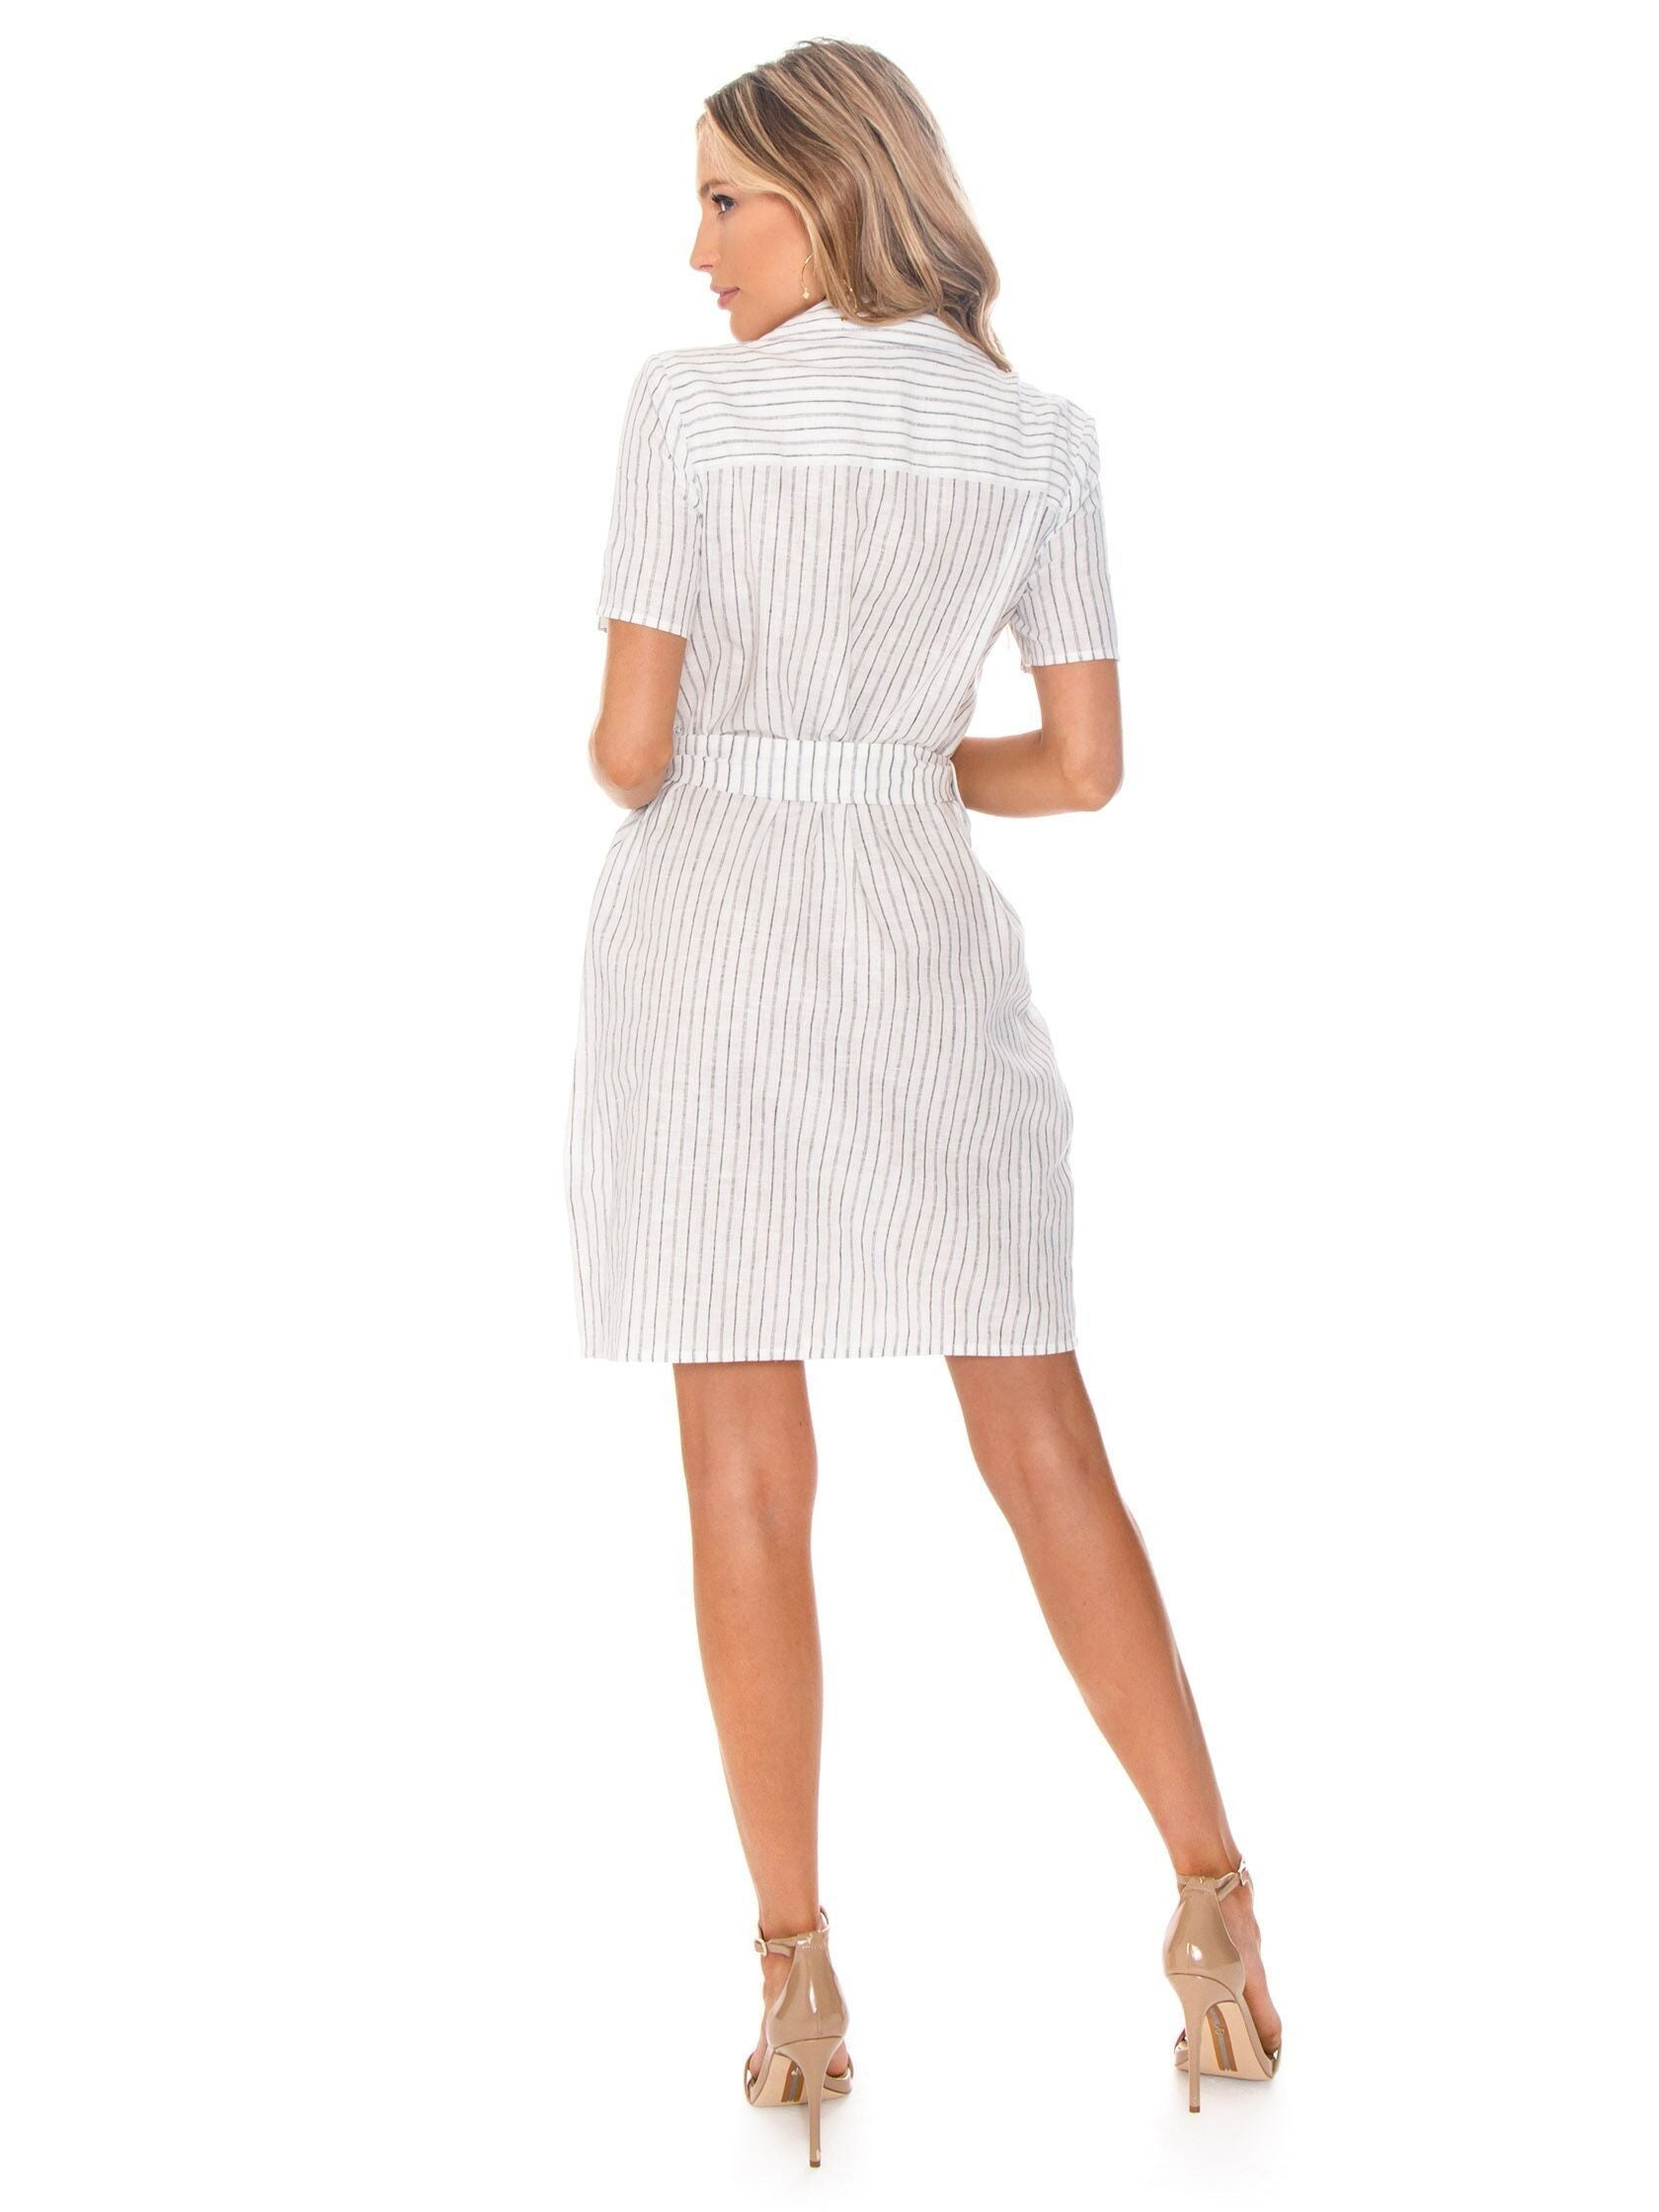 Women wearing a dress rental from 1.STATE called Patch Pocket Canopy Stripe Dress